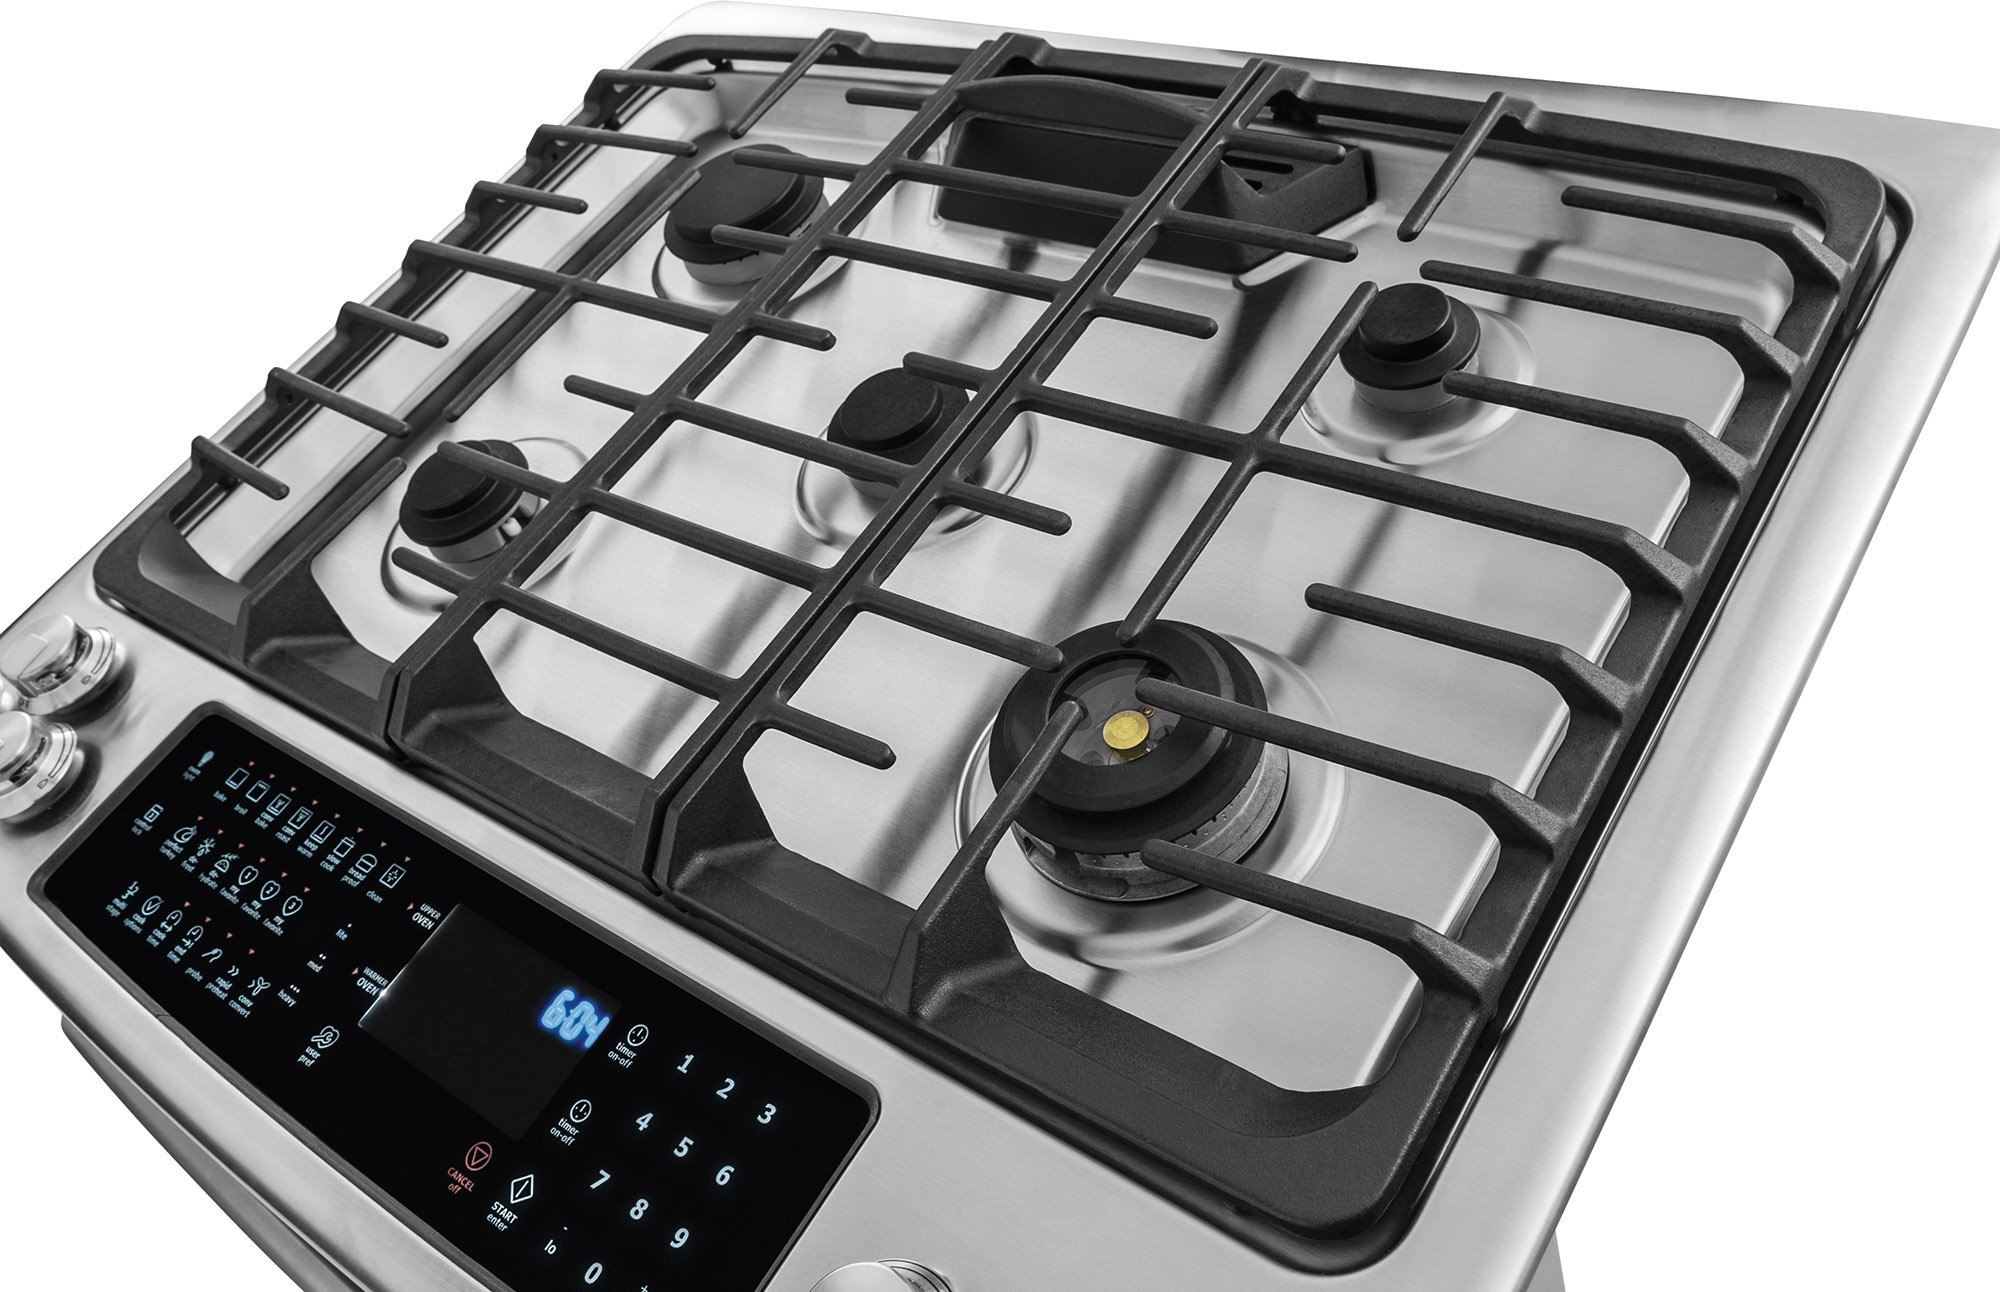 Electrolux EW30GS80RS 30'' Star K ADA Compliant Gas Slide-In Range Oven with 5 Sealed Burners 4.5 cu. ft. Oven Capacity Continuous Grates and Luxury-Glide Oven Rack in Stainless by Electrolux (Image #9)